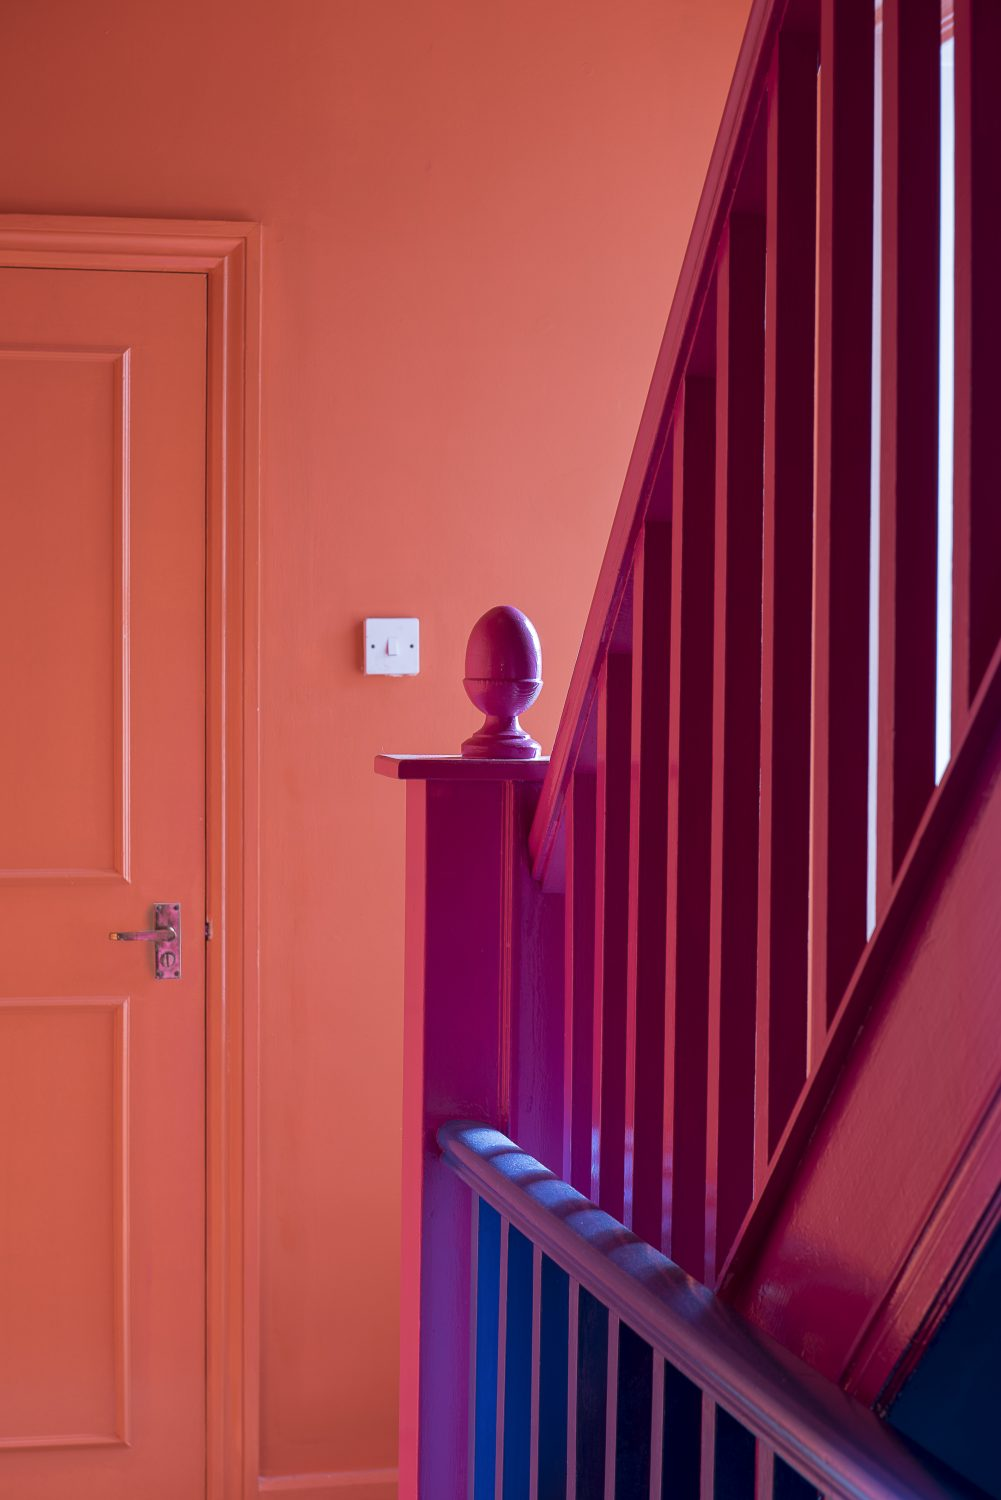 The staircase is a riot of pink and orange and is home to an Elvis bust spray painted by Amy the day before our visit